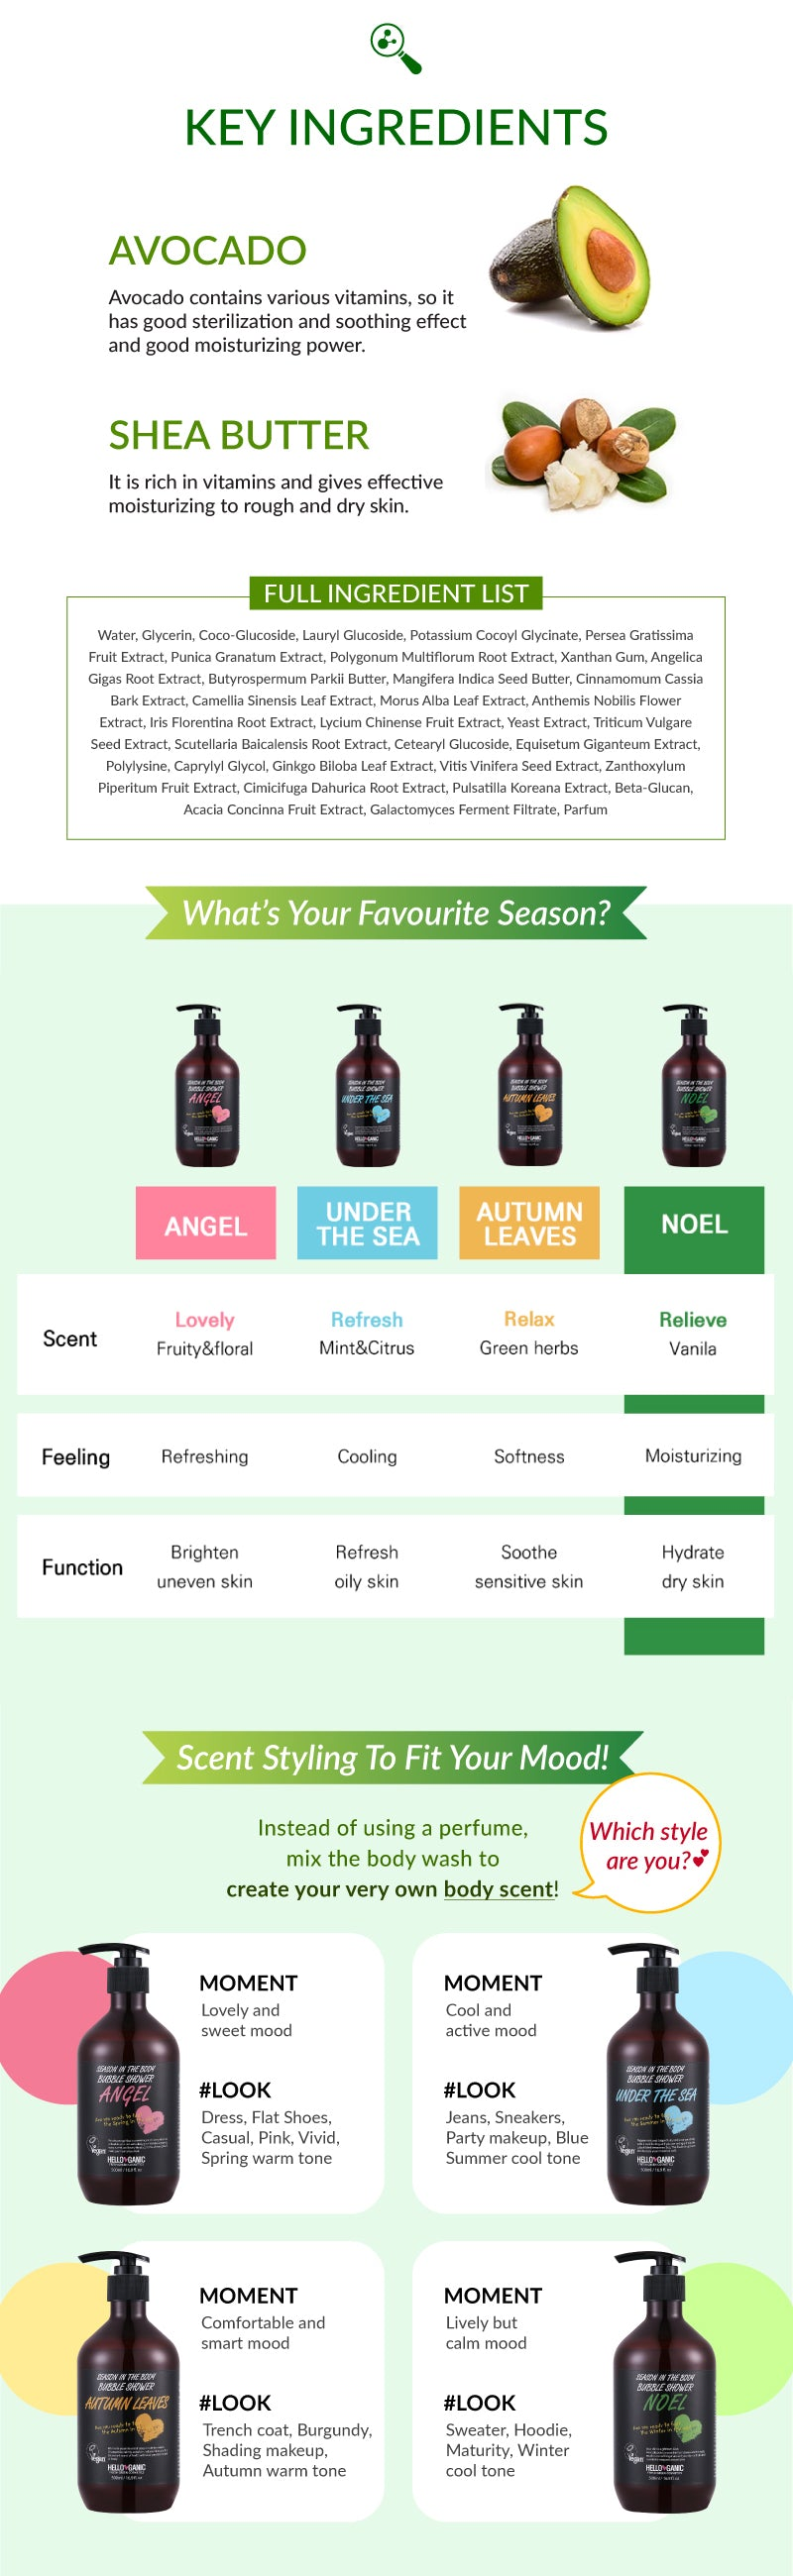 Check out the Ingredient list with Avocado and Shea Butter Extracts! With 4 different seasons for different moods, feeling and function! Choose a scent that suits your style today! Mix the scents to create your own body scent today!